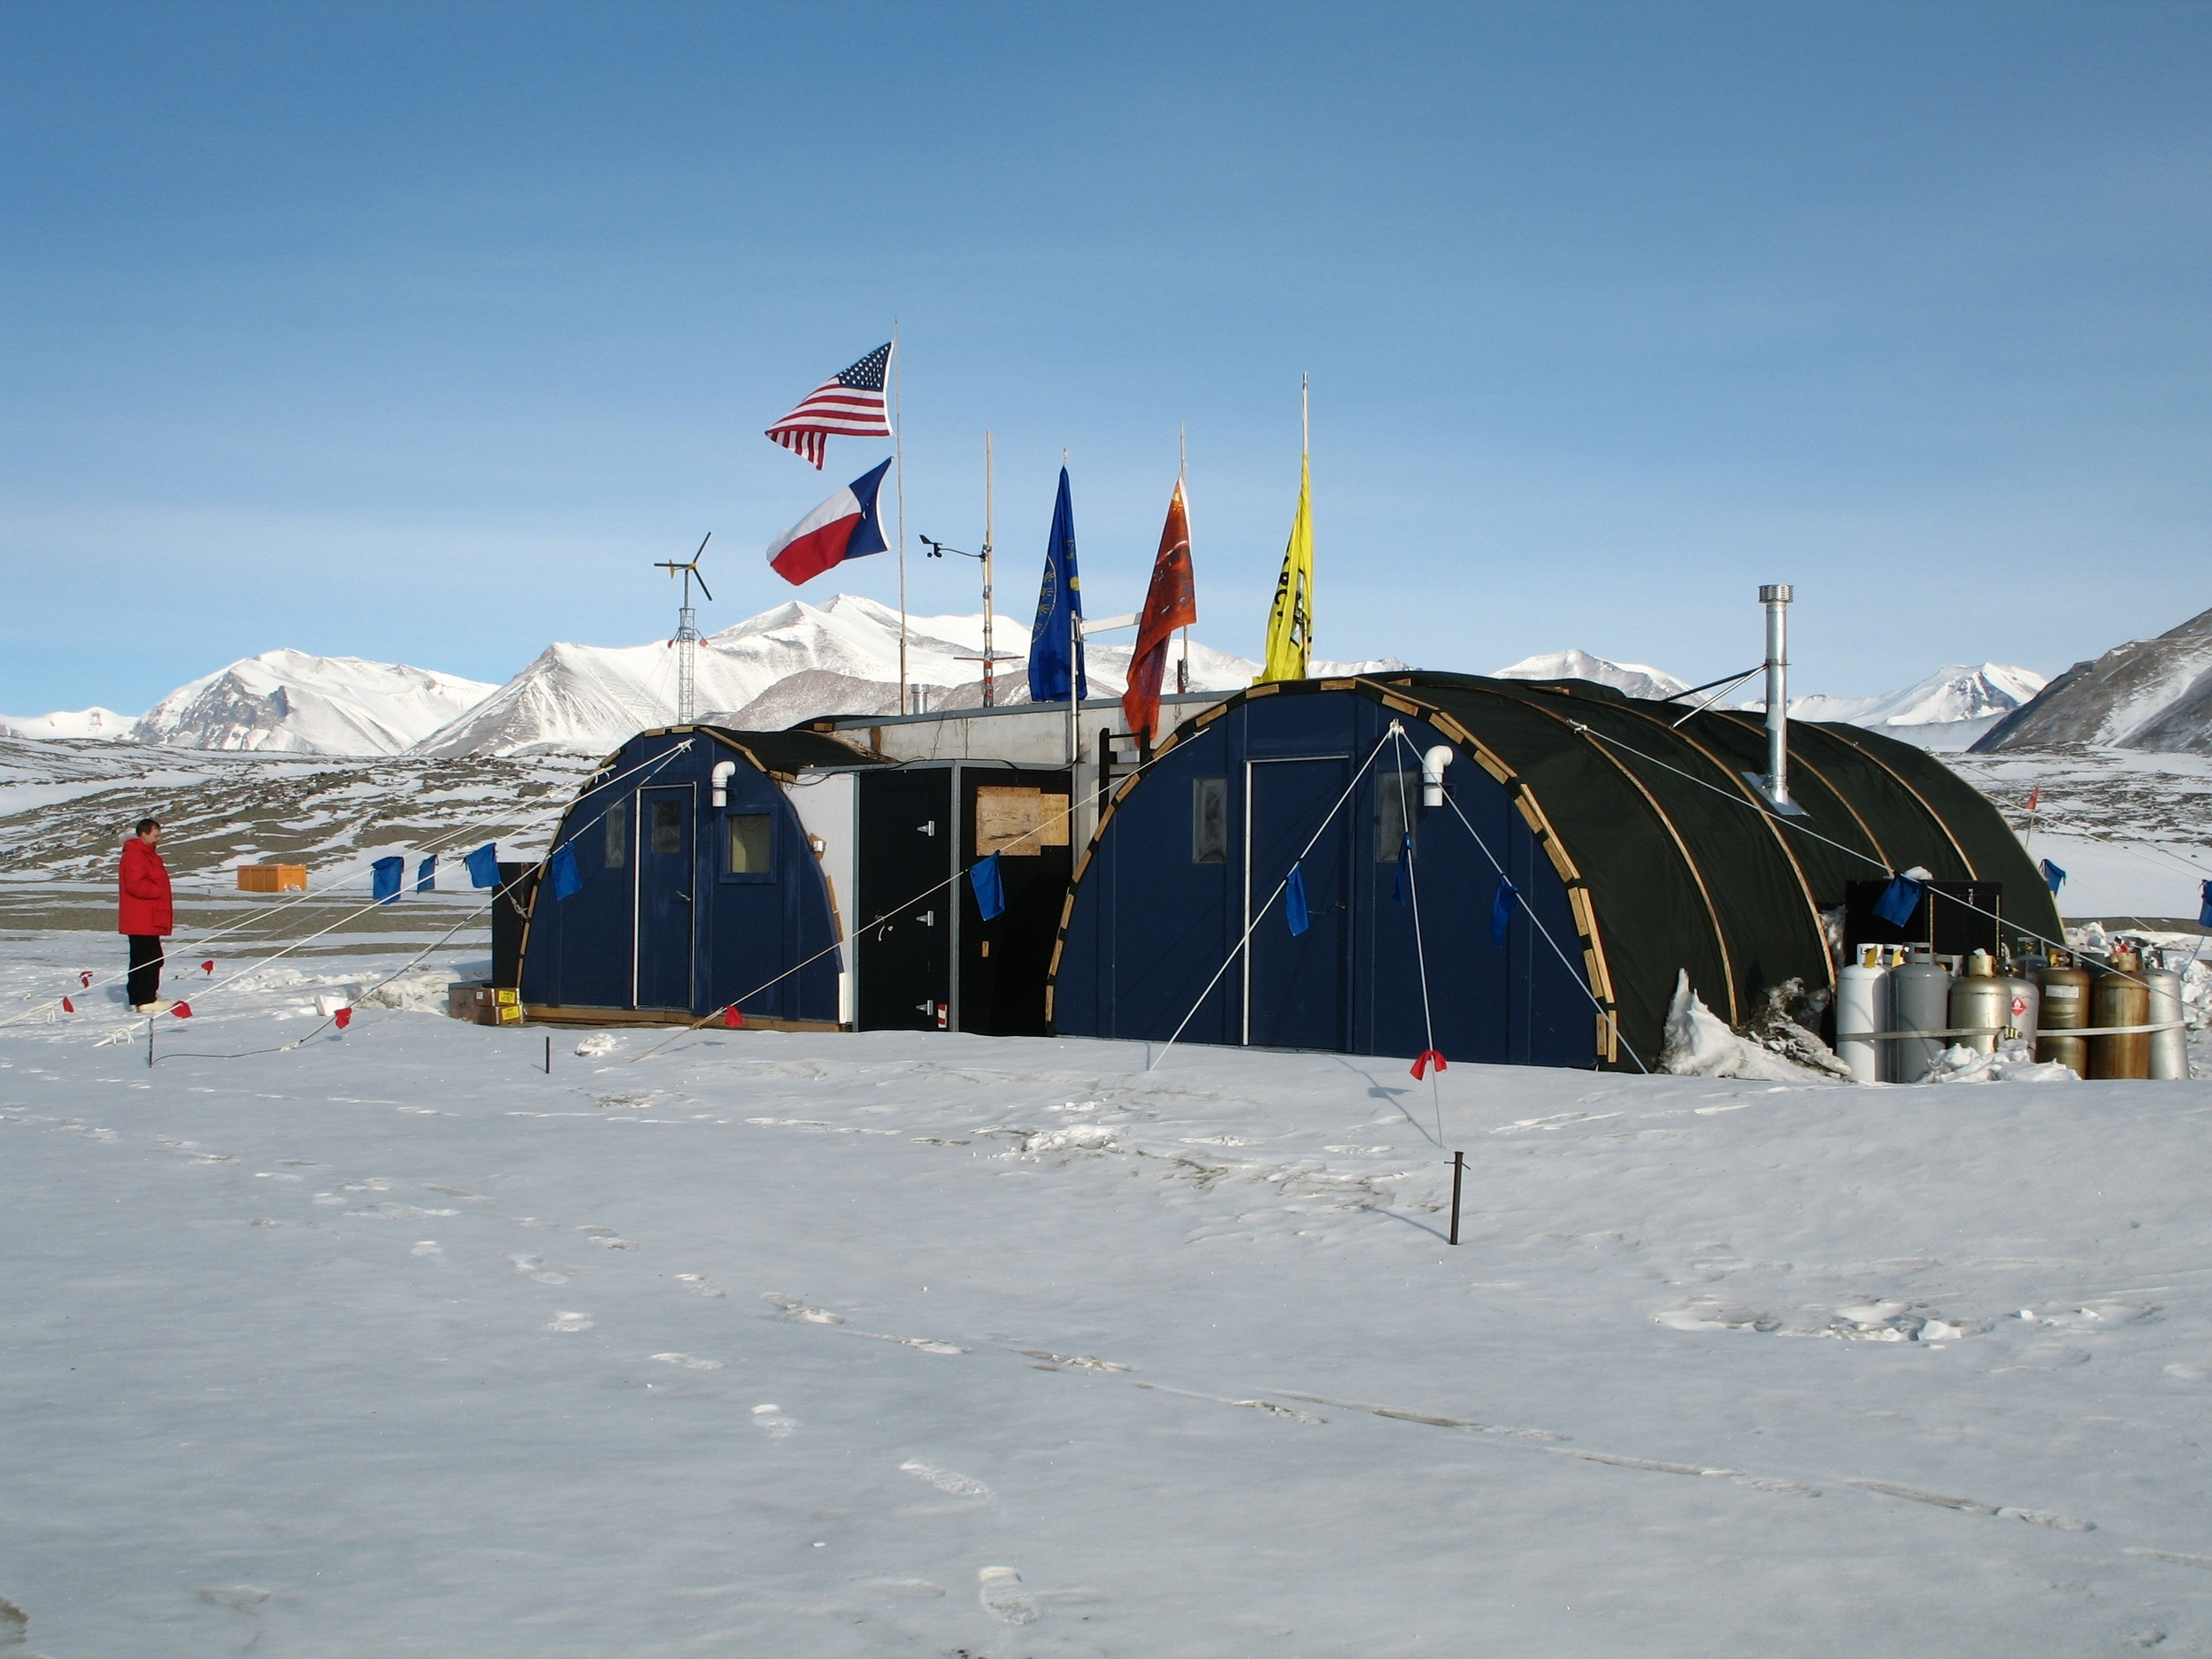 The field camp at New Harbor, about 30 miles from McMurdo Station, where our team occasionally dives.